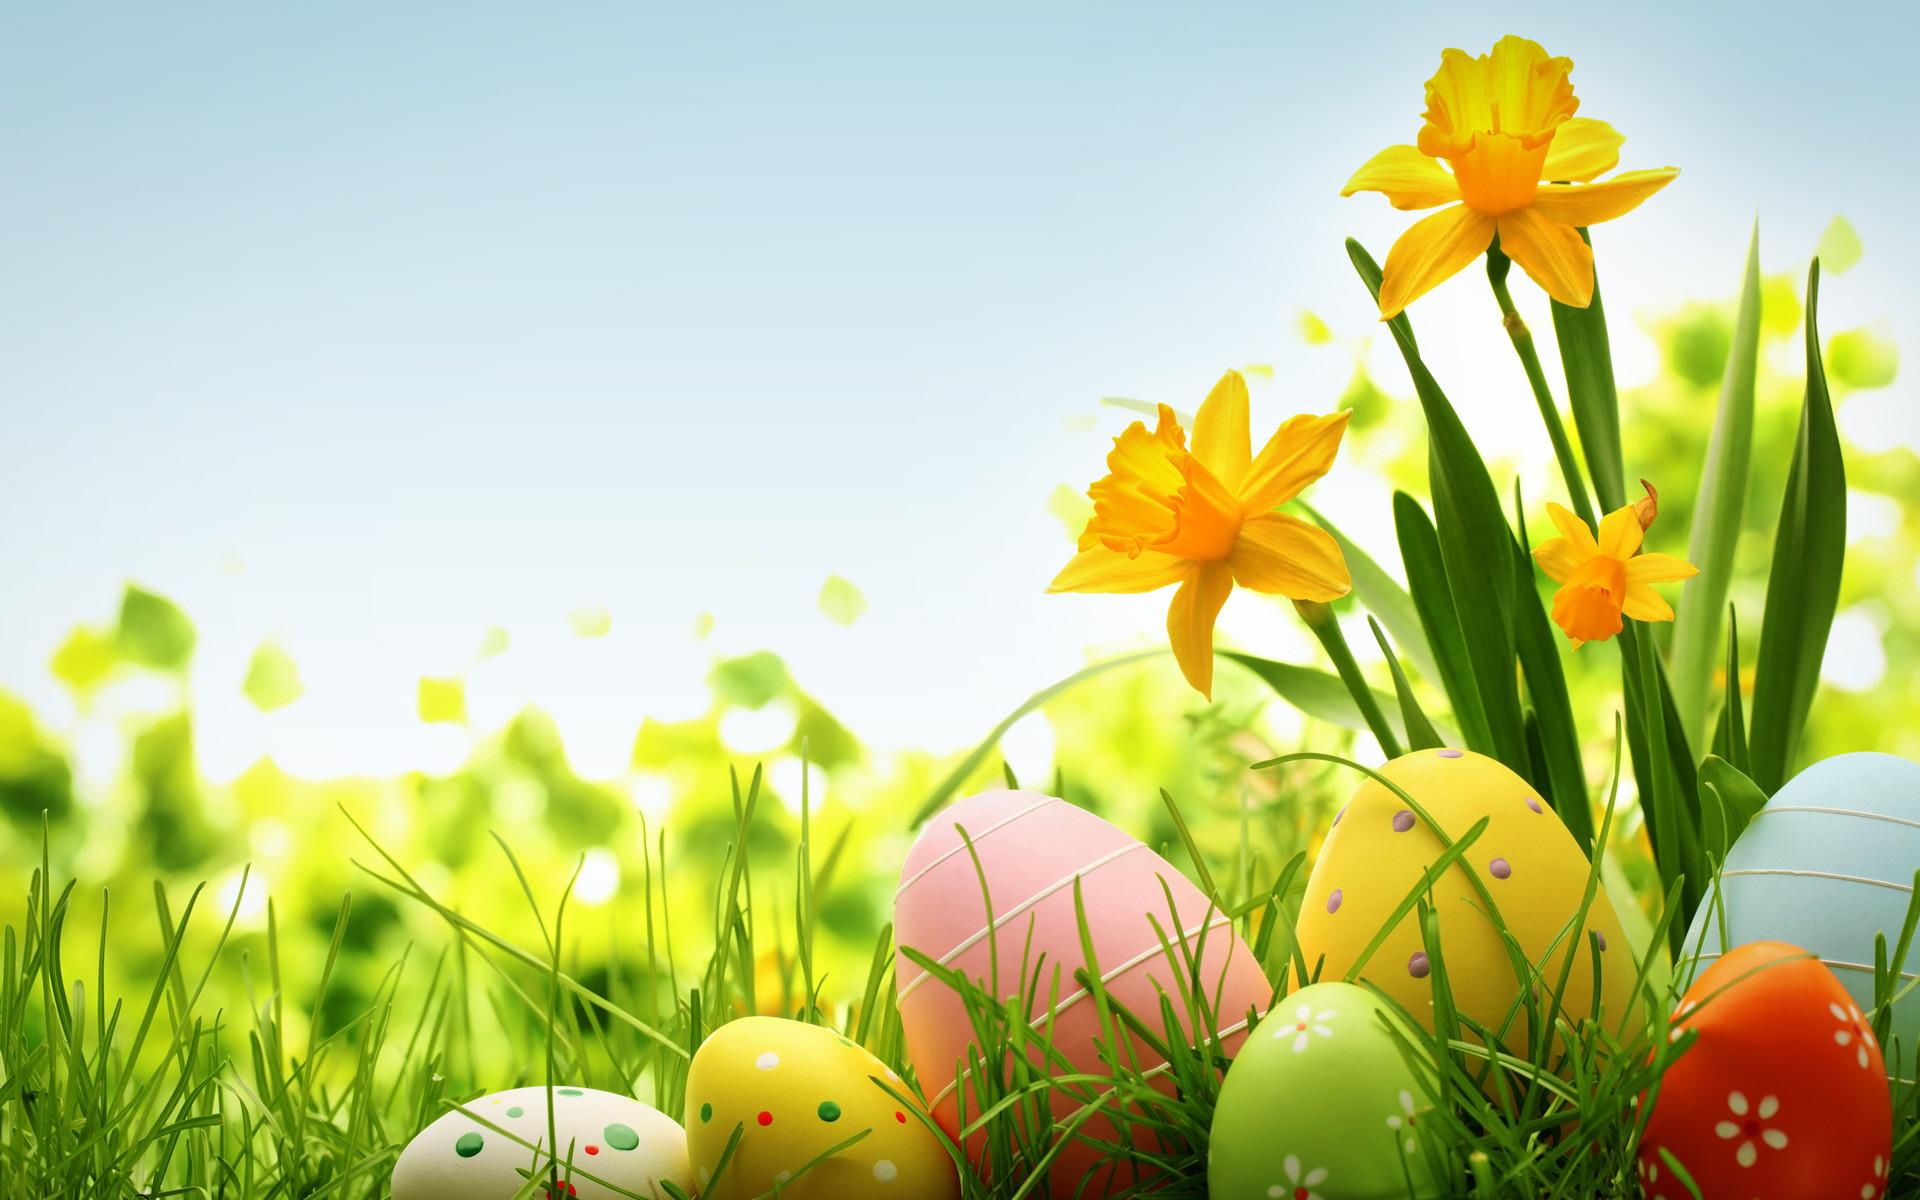 1920x1200 hd easter wallpapers picture images cool 1080p smart phone background  photos free images high quality dual monitors ultra hd 4k 1920×1200  Wallpaper HD